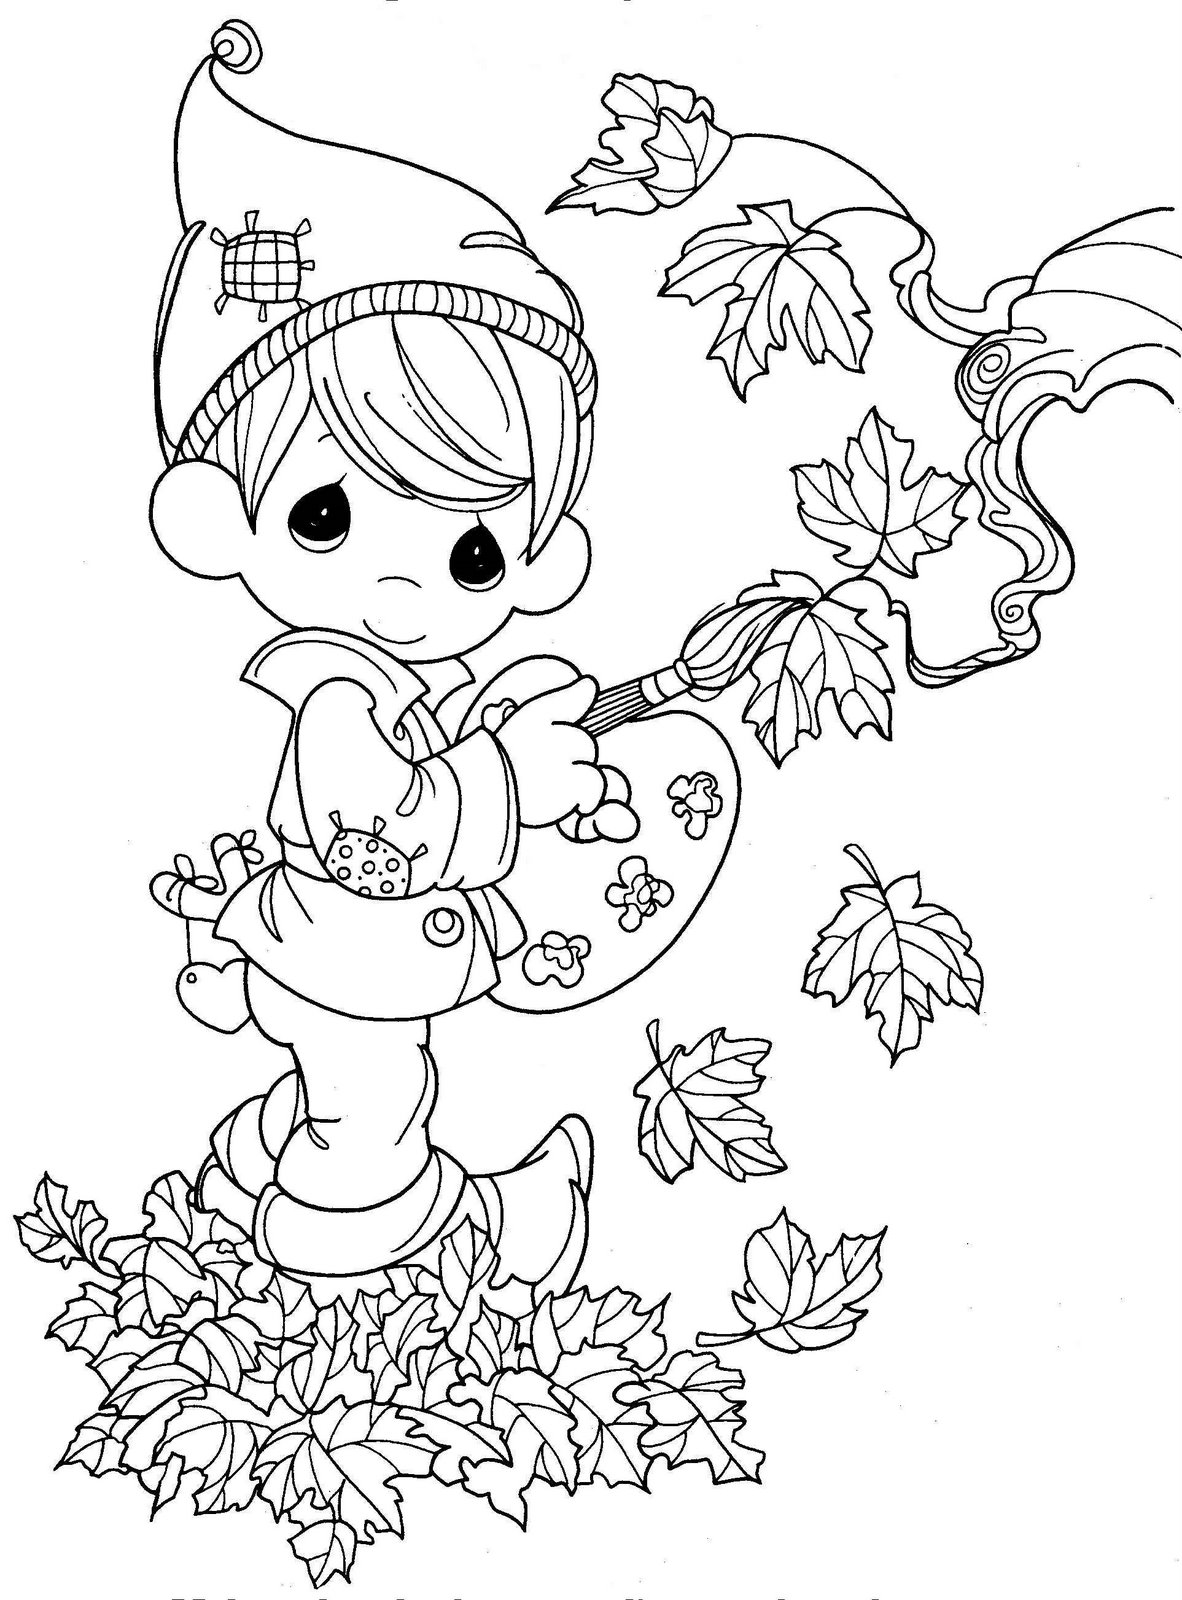 coloring fall pictures free printable fall coloring pages for kids best pictures coloring fall